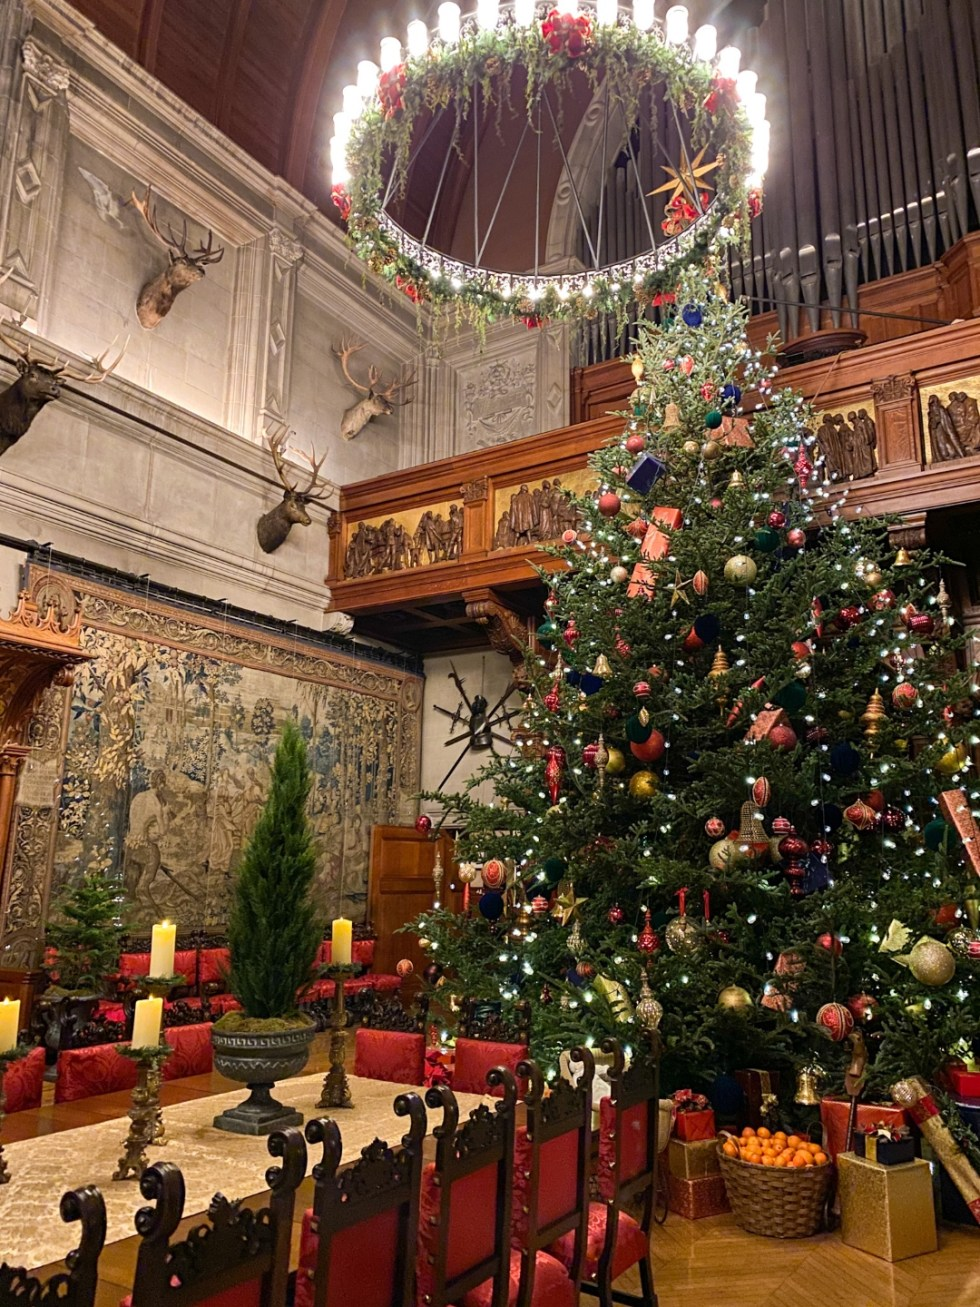 2020, a Year in Review: our Travel Adventures - I'm Fixin' To - @imfixintoblog |Year in Review by popular NC travel blog, I'm Fixin' To: image of a gigantic Christmas tree in a dining room at the Biltmore.